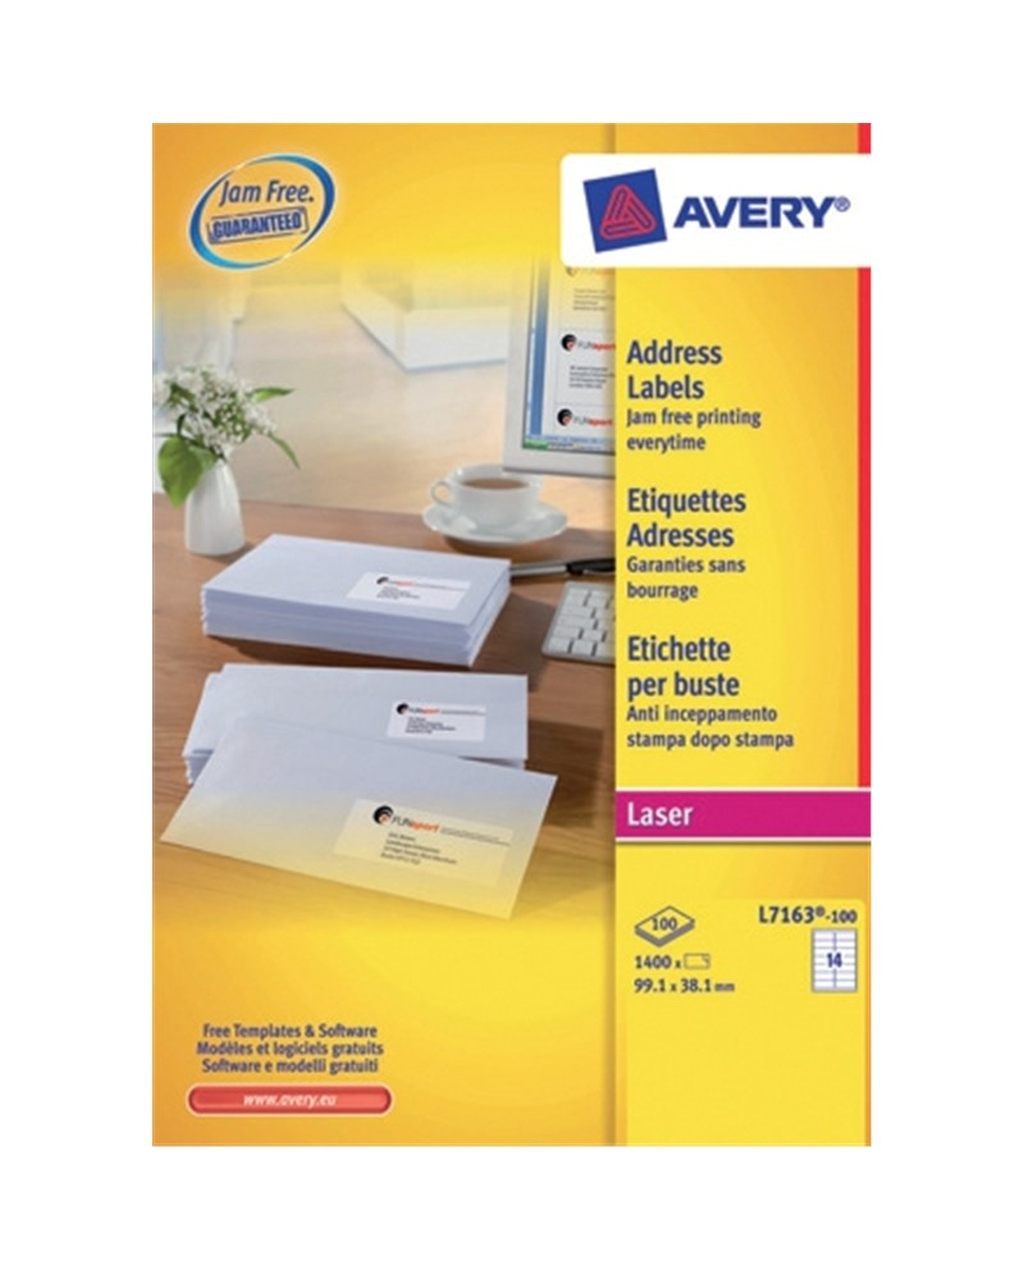 Avery Laser Labels - Jam-Free L7159, 64 x 34mm